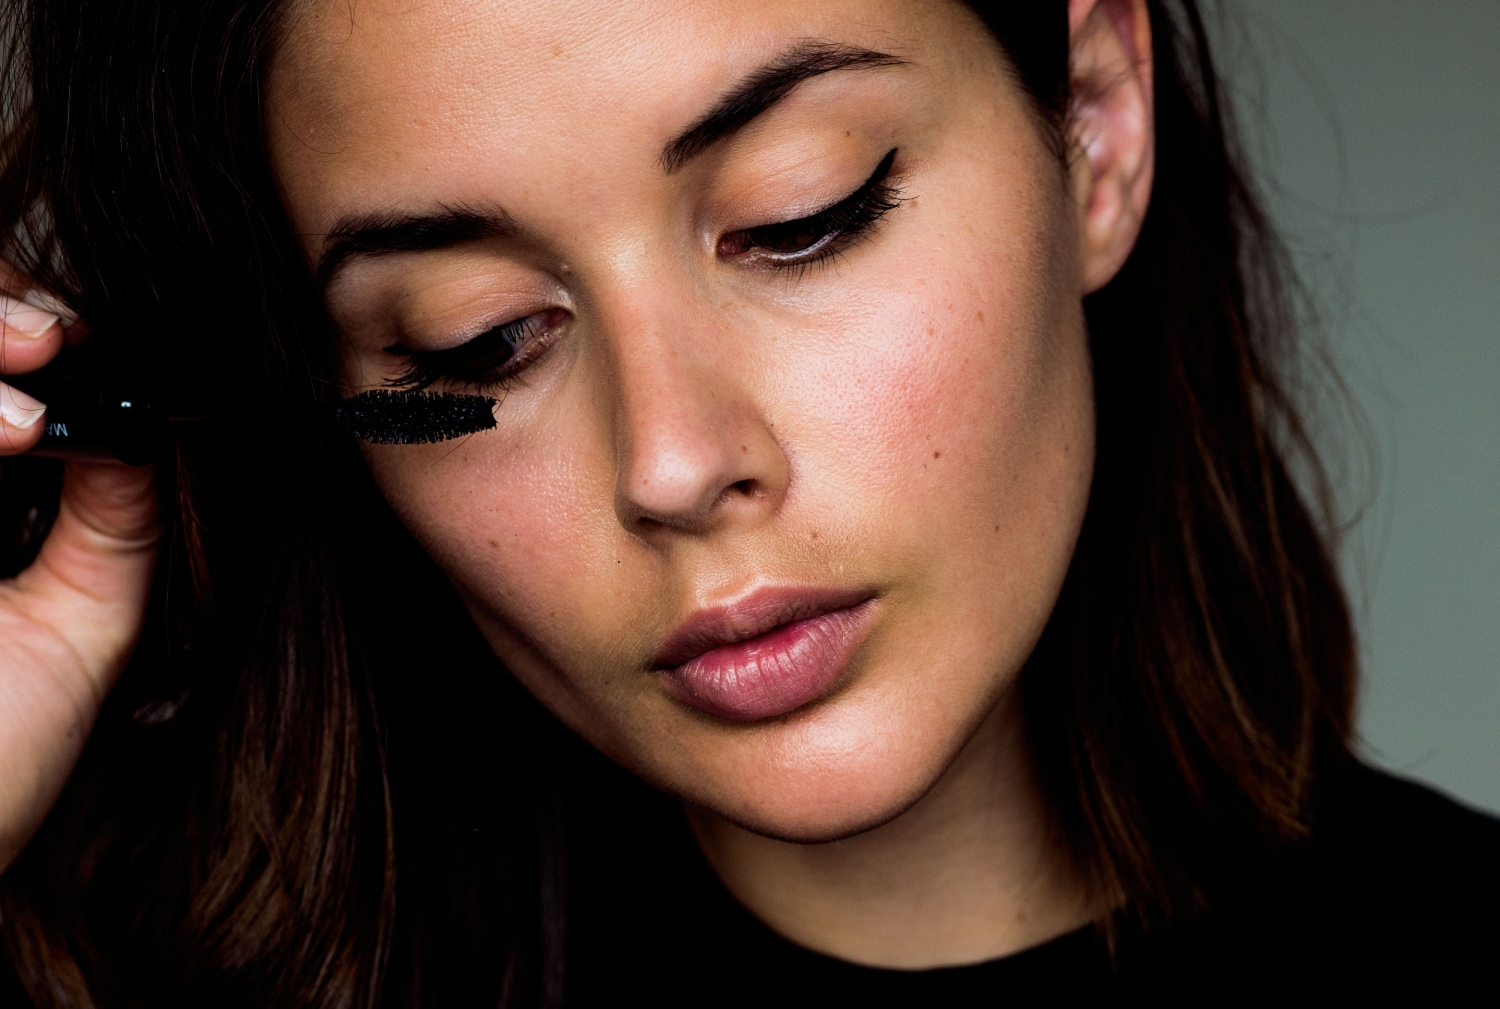 Model-Co-harper-and-harley_lash-and-line_2-in1_mascara